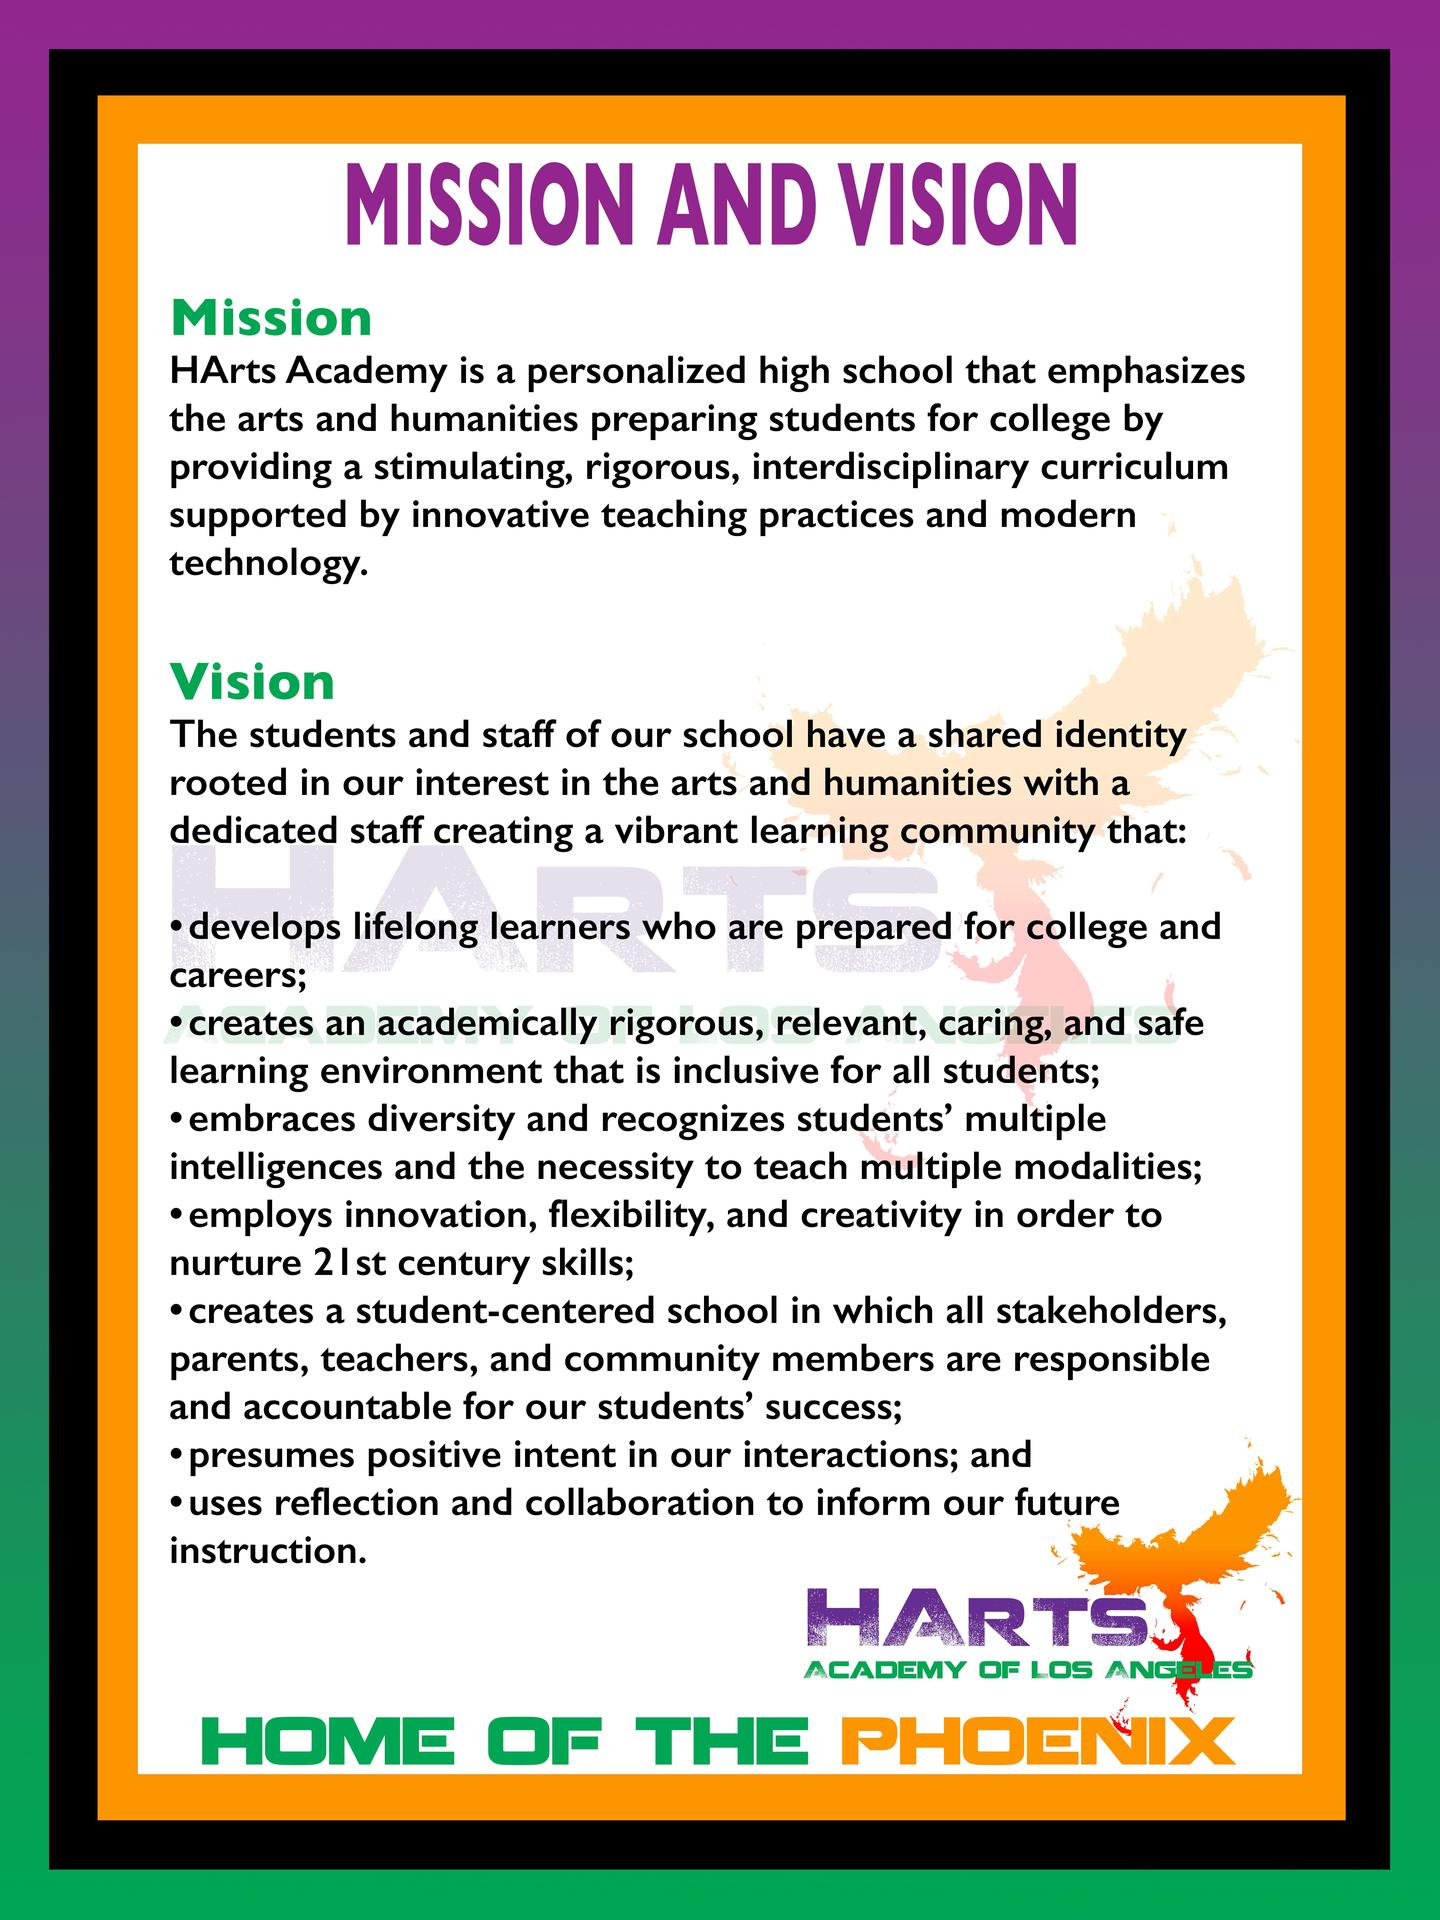 HArts Academy Mission and Vision